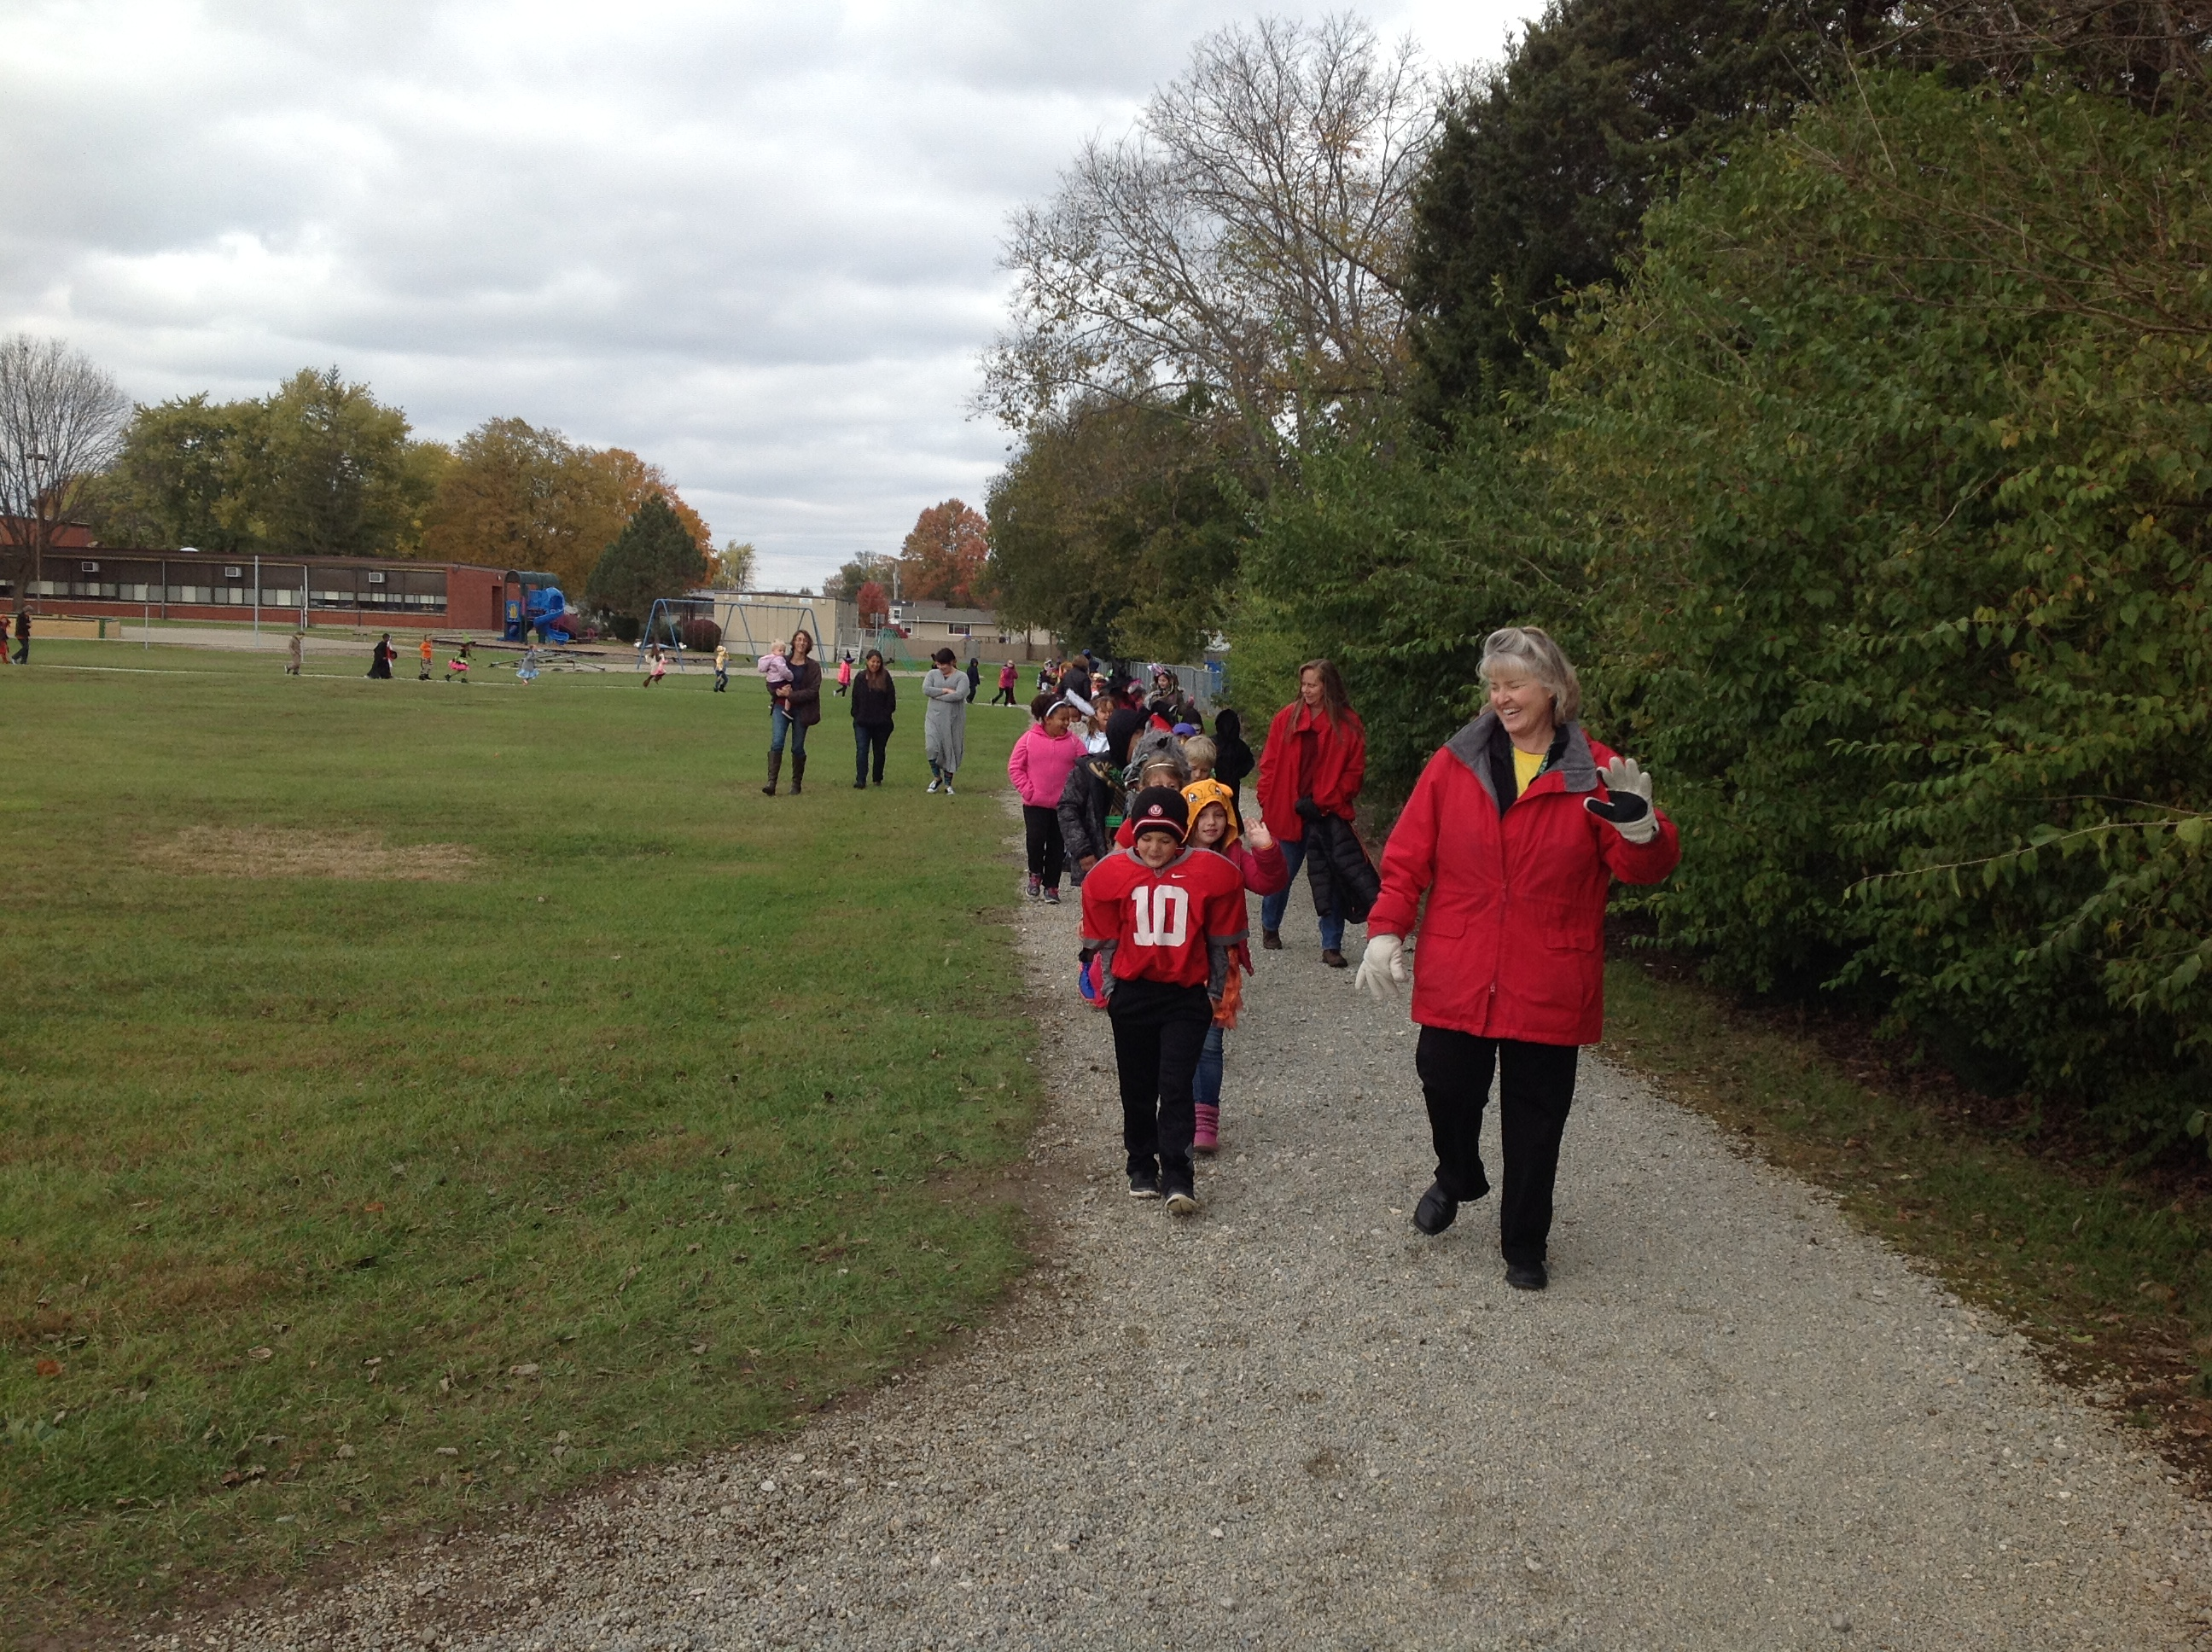 2nd Graders parading around the track